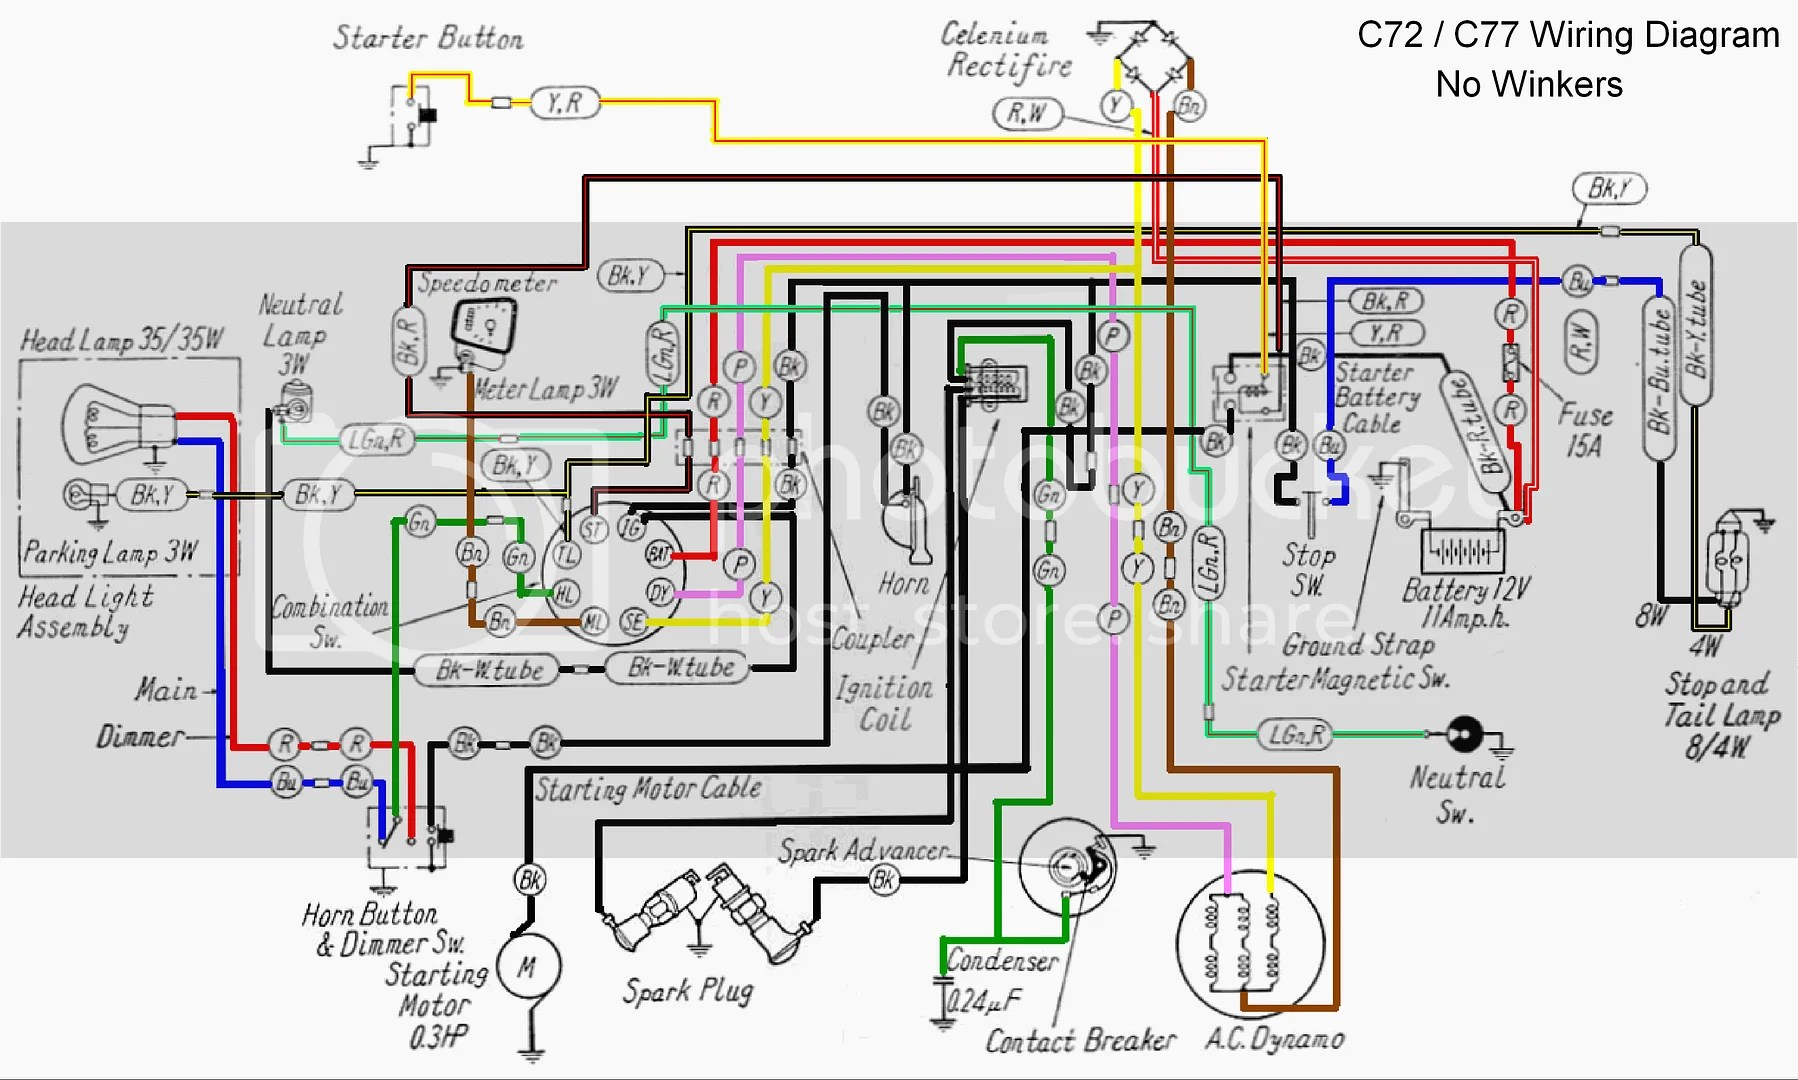 honda305 com forum view topic ca77 wiring diagram with and 1966 honda dream wiring diagram [ 1798 x 1080 Pixel ]